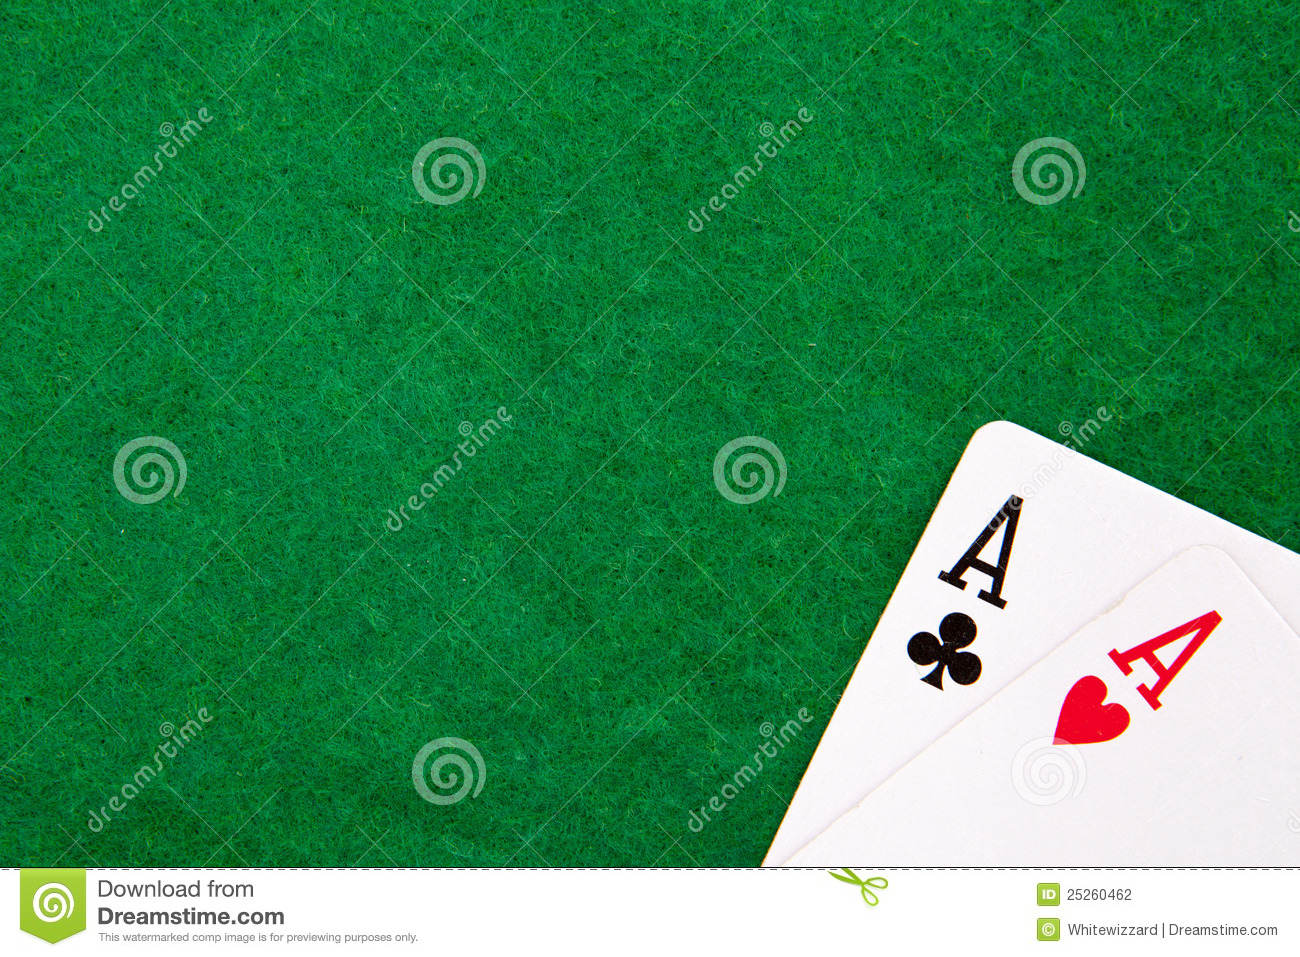 texas holdem odds of pocket aces